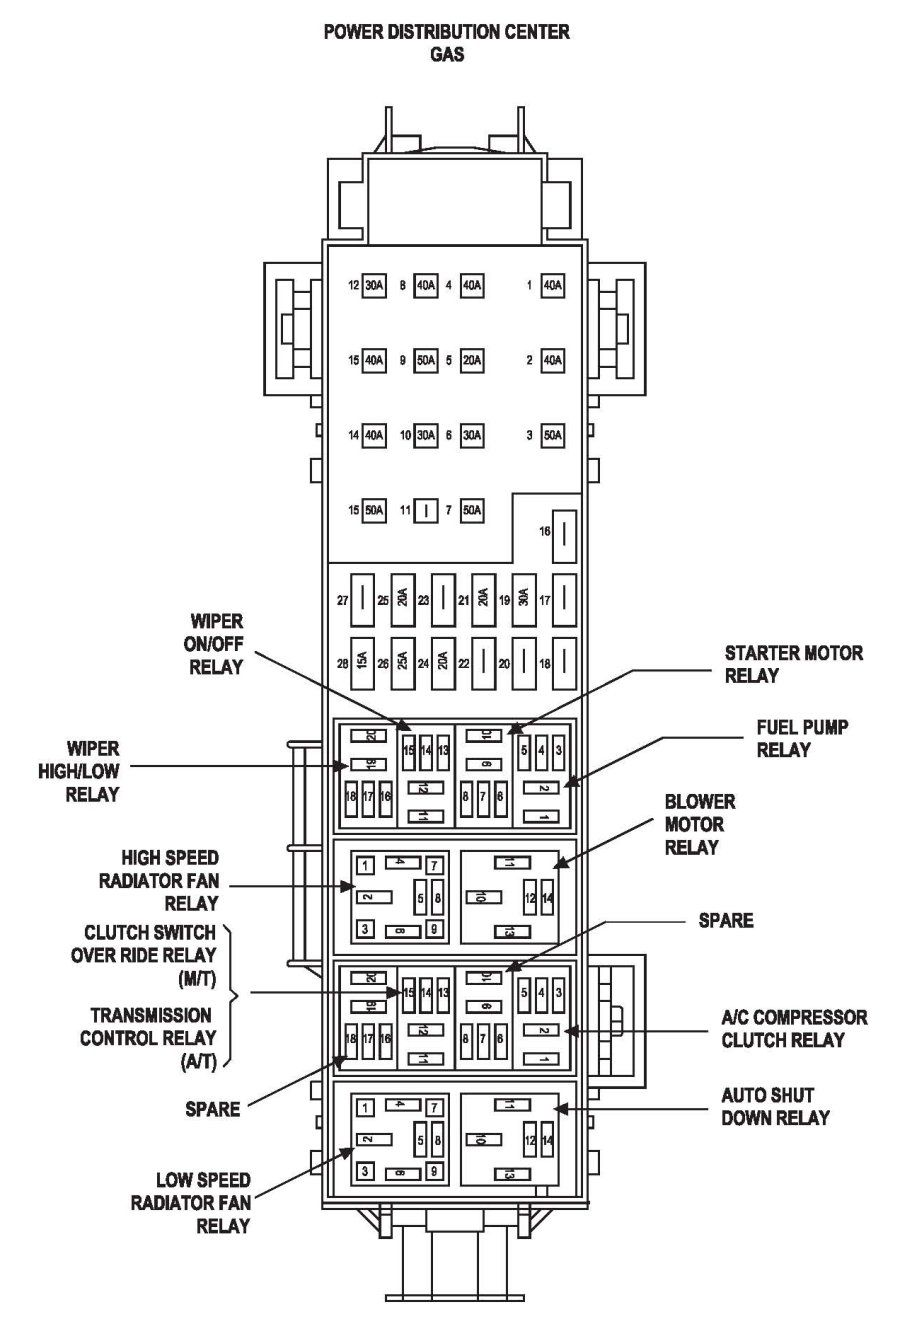 b3536c3739783eb19f827744cc42c3c4 jeep liberty fuse box diagram image details jeep liberty 2006 jeep fuse box diagram at readyjetset.co